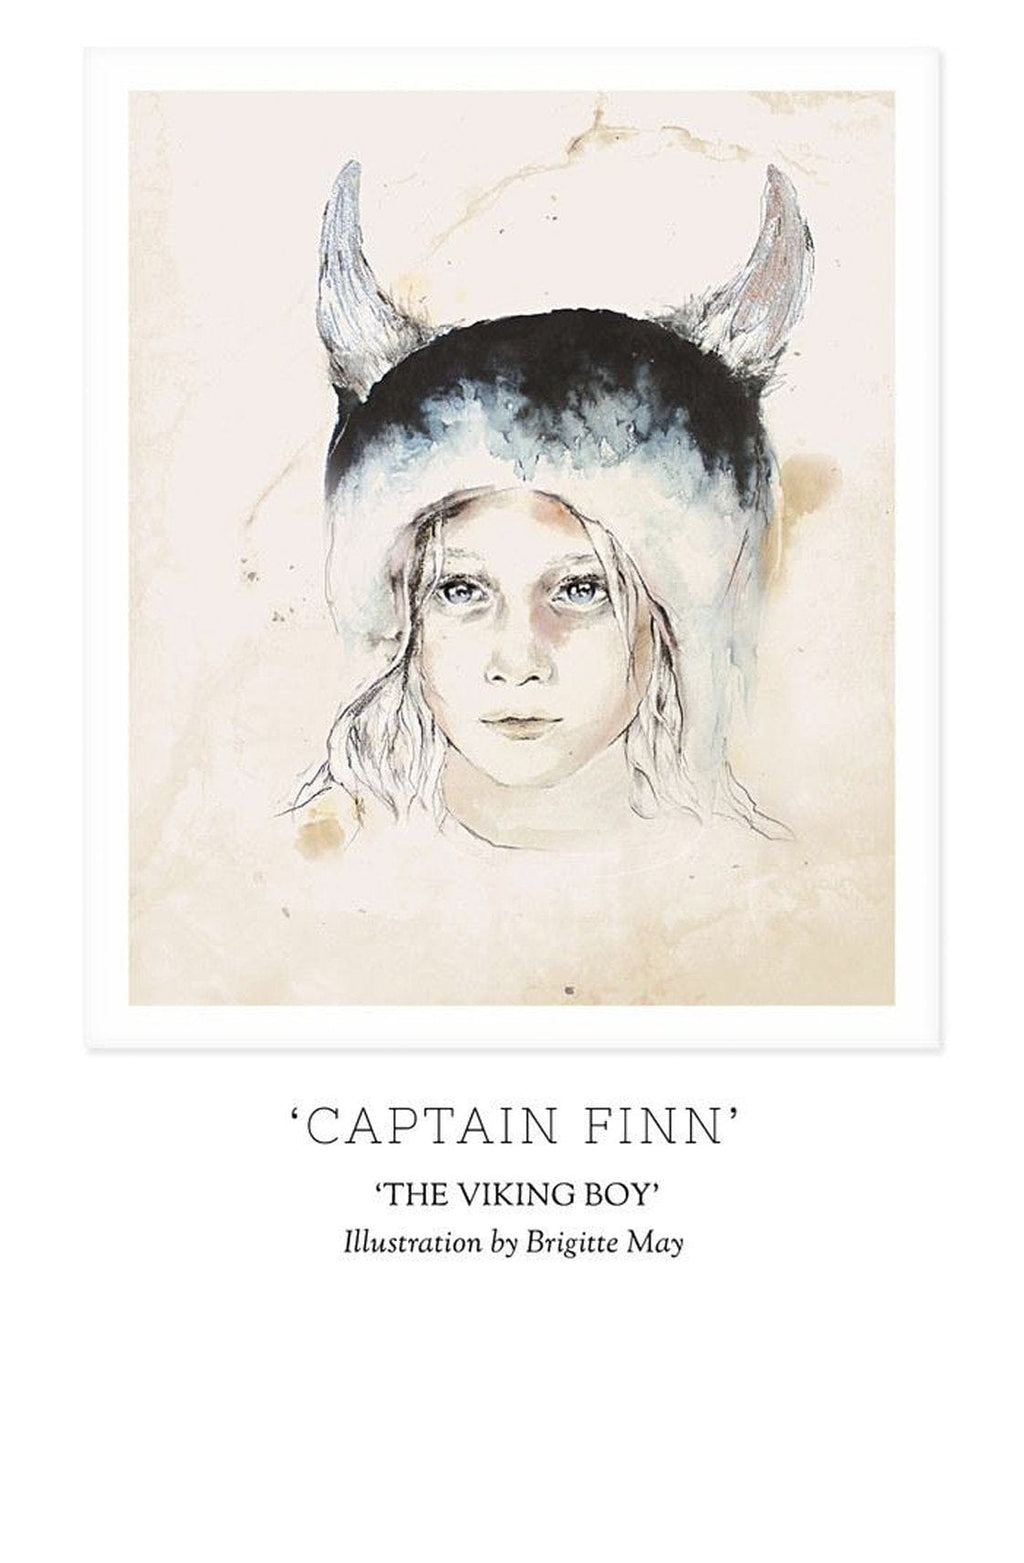 THE VIKING BOY - 'CAPTAIN FINN' Print